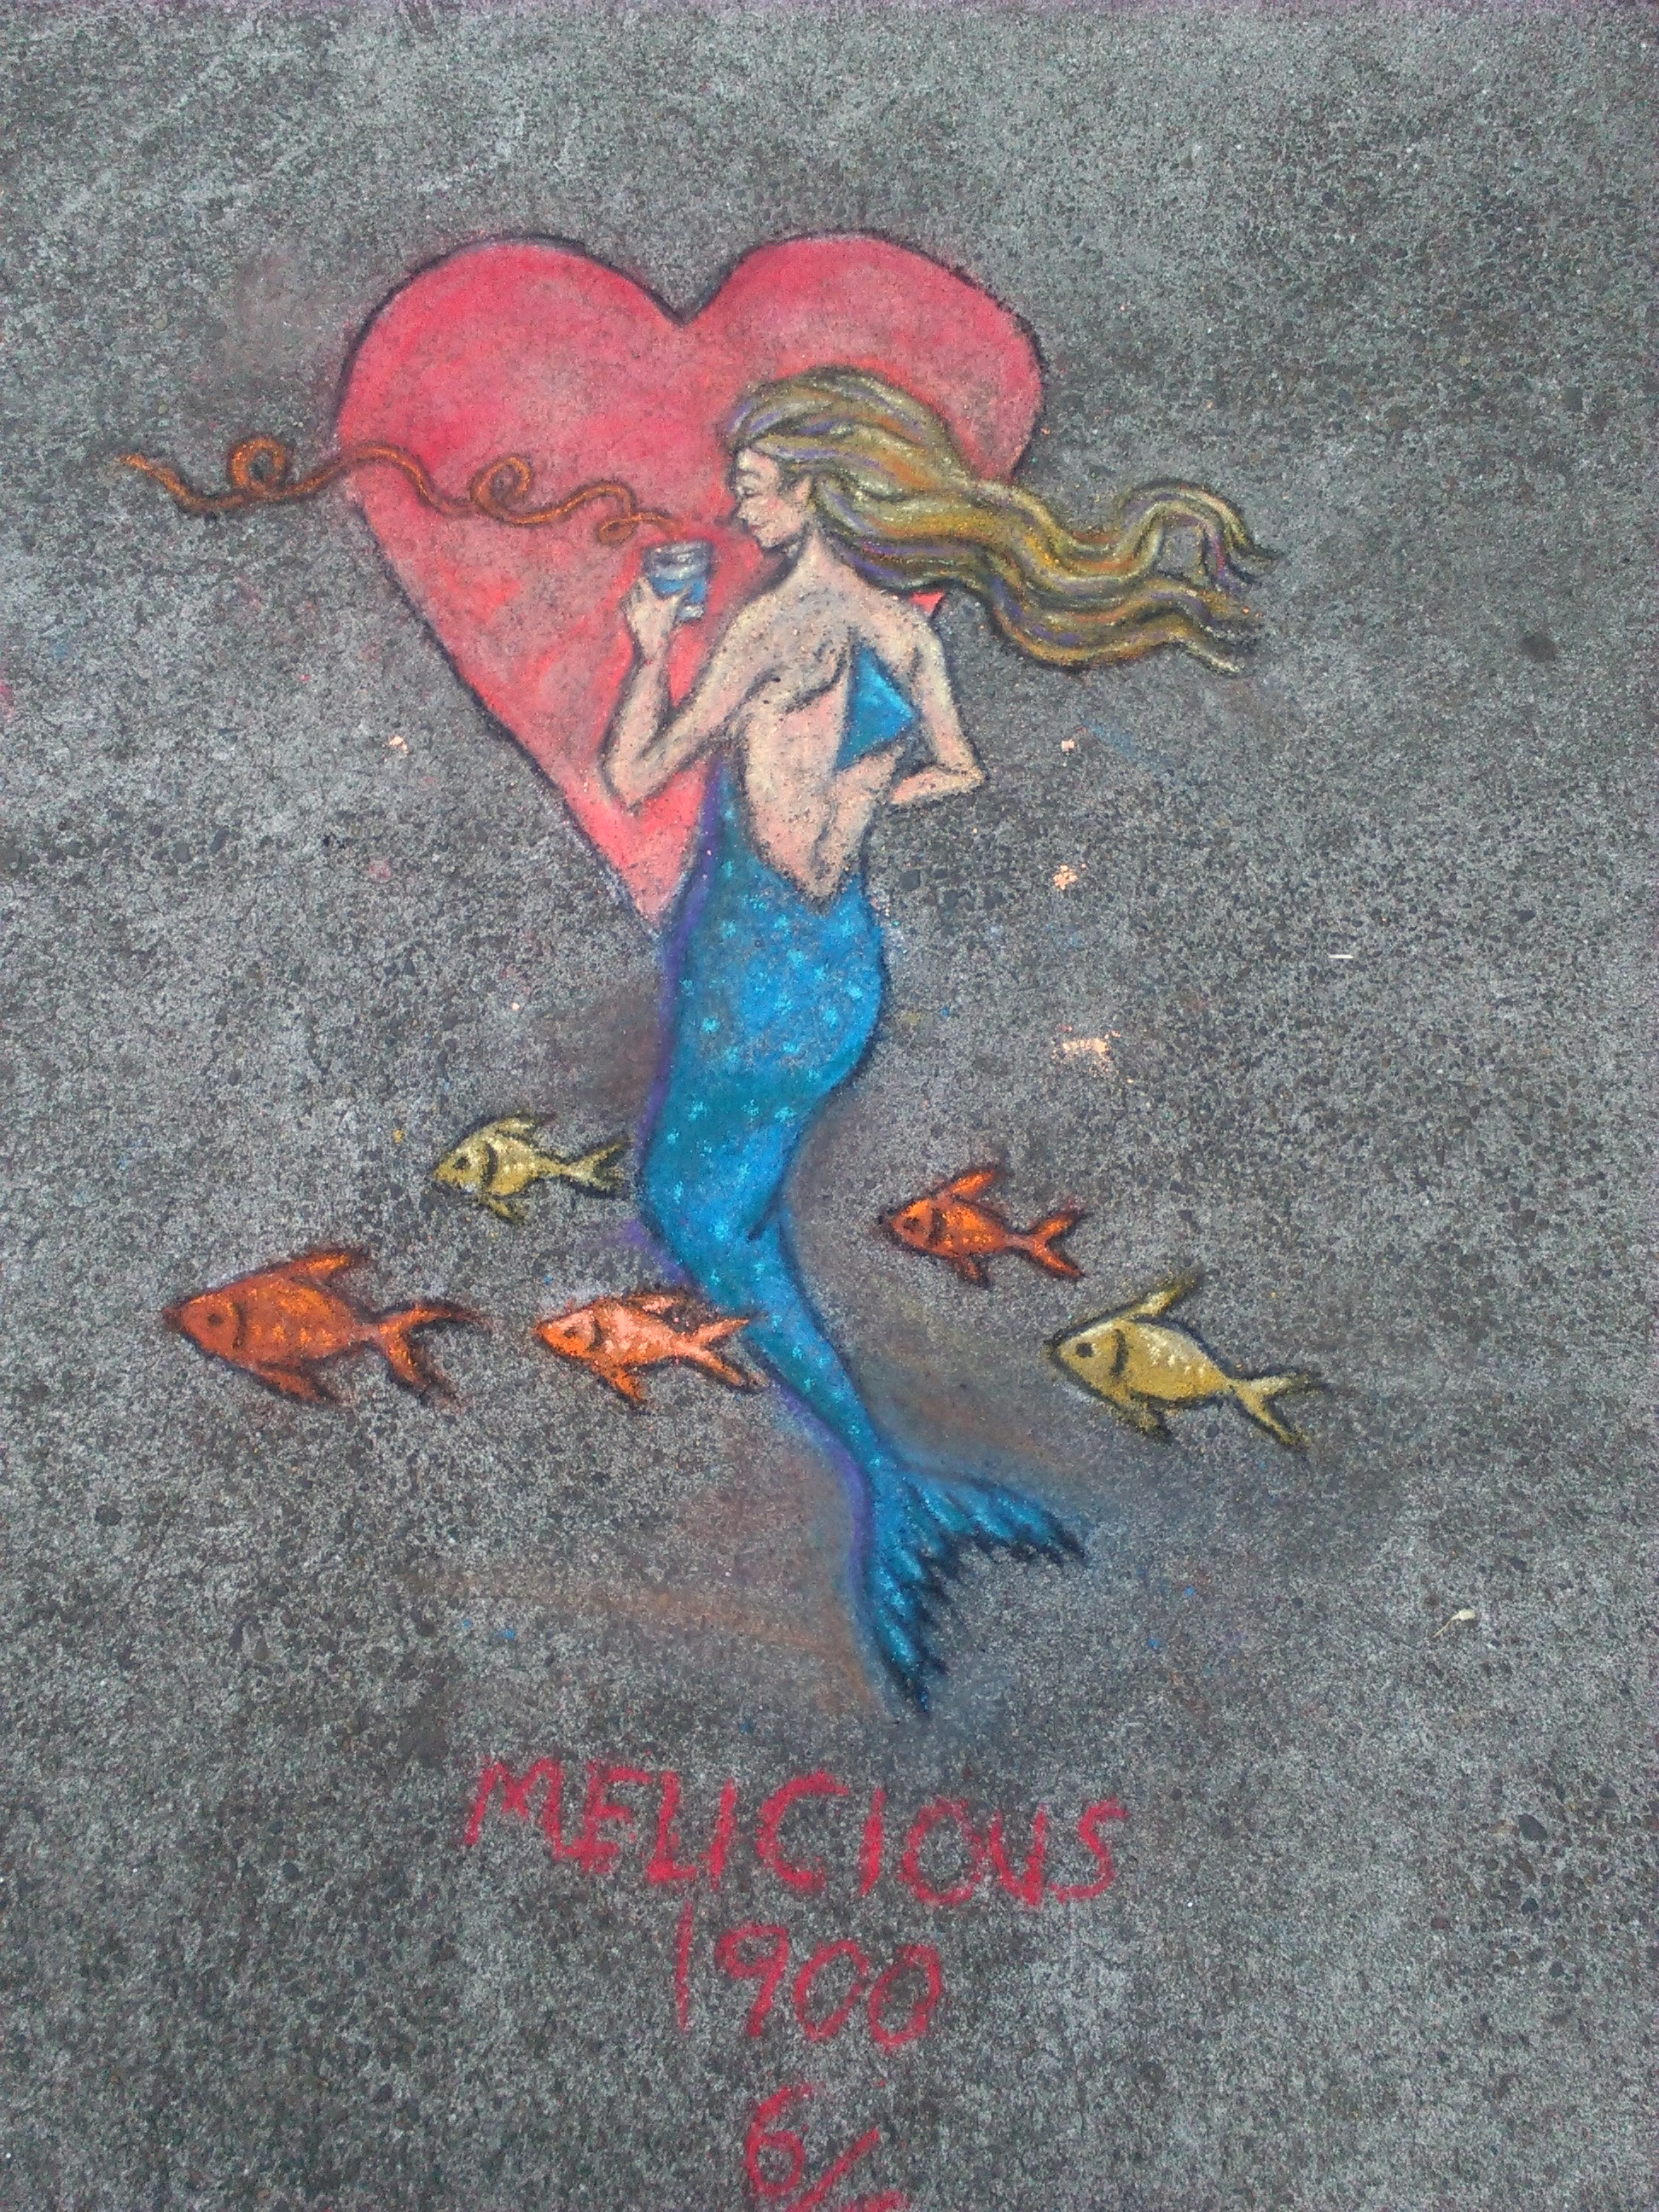 The 6th and final drawing where the mermaid get to drink coffee for the first time and loves it. Near NW 2nd & Davis.